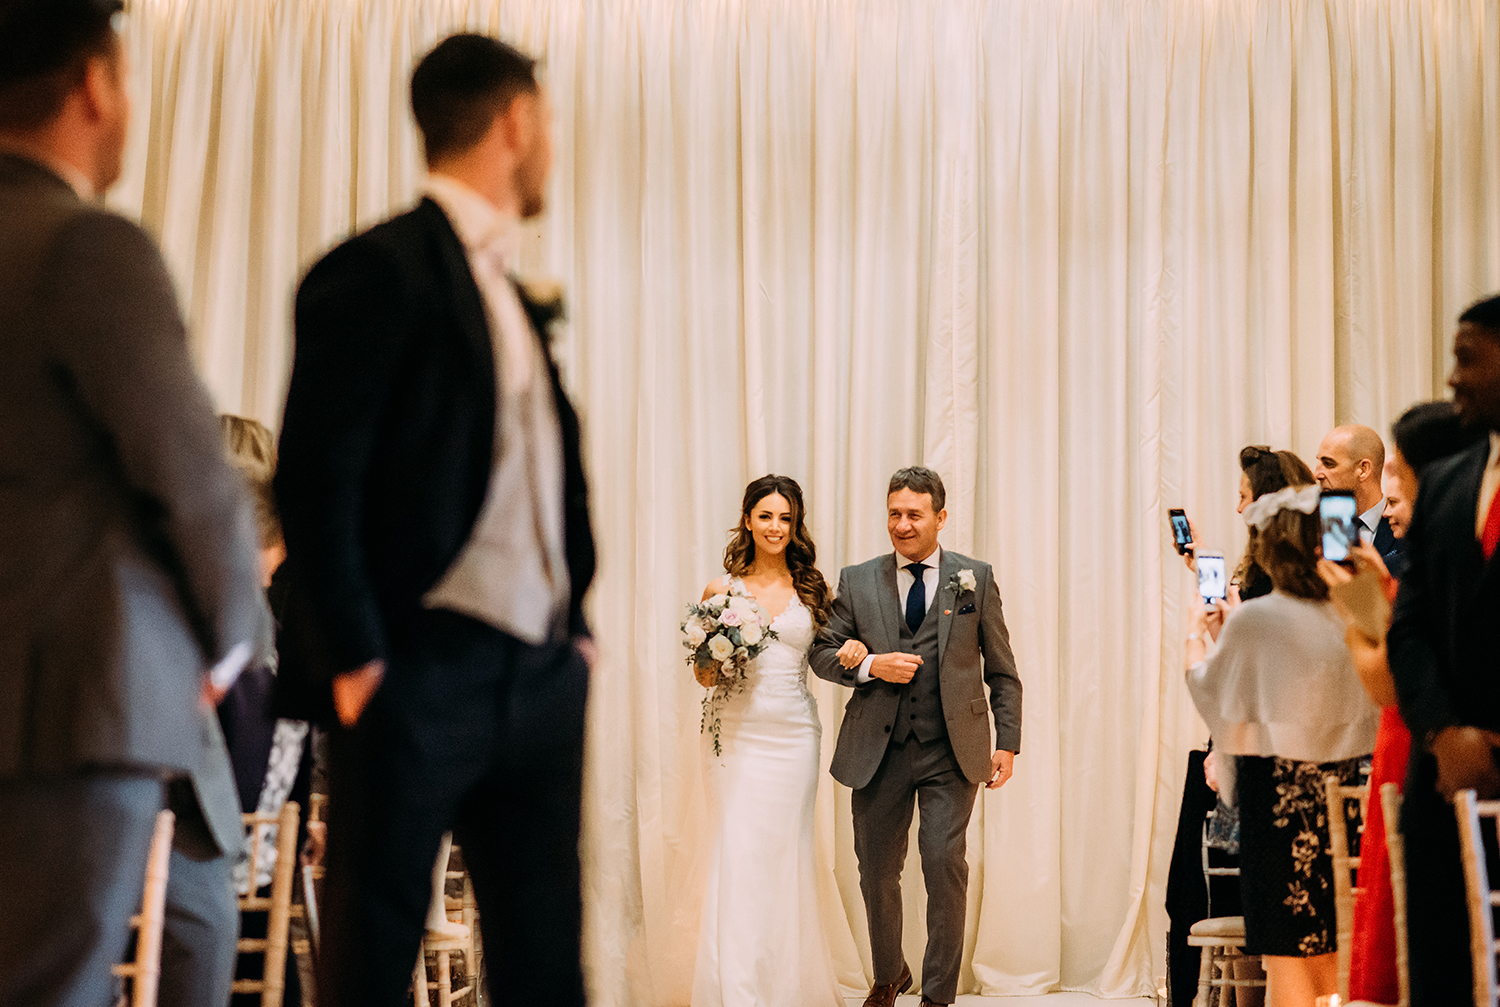 groom looks back at the bride walking down the aisle with her father